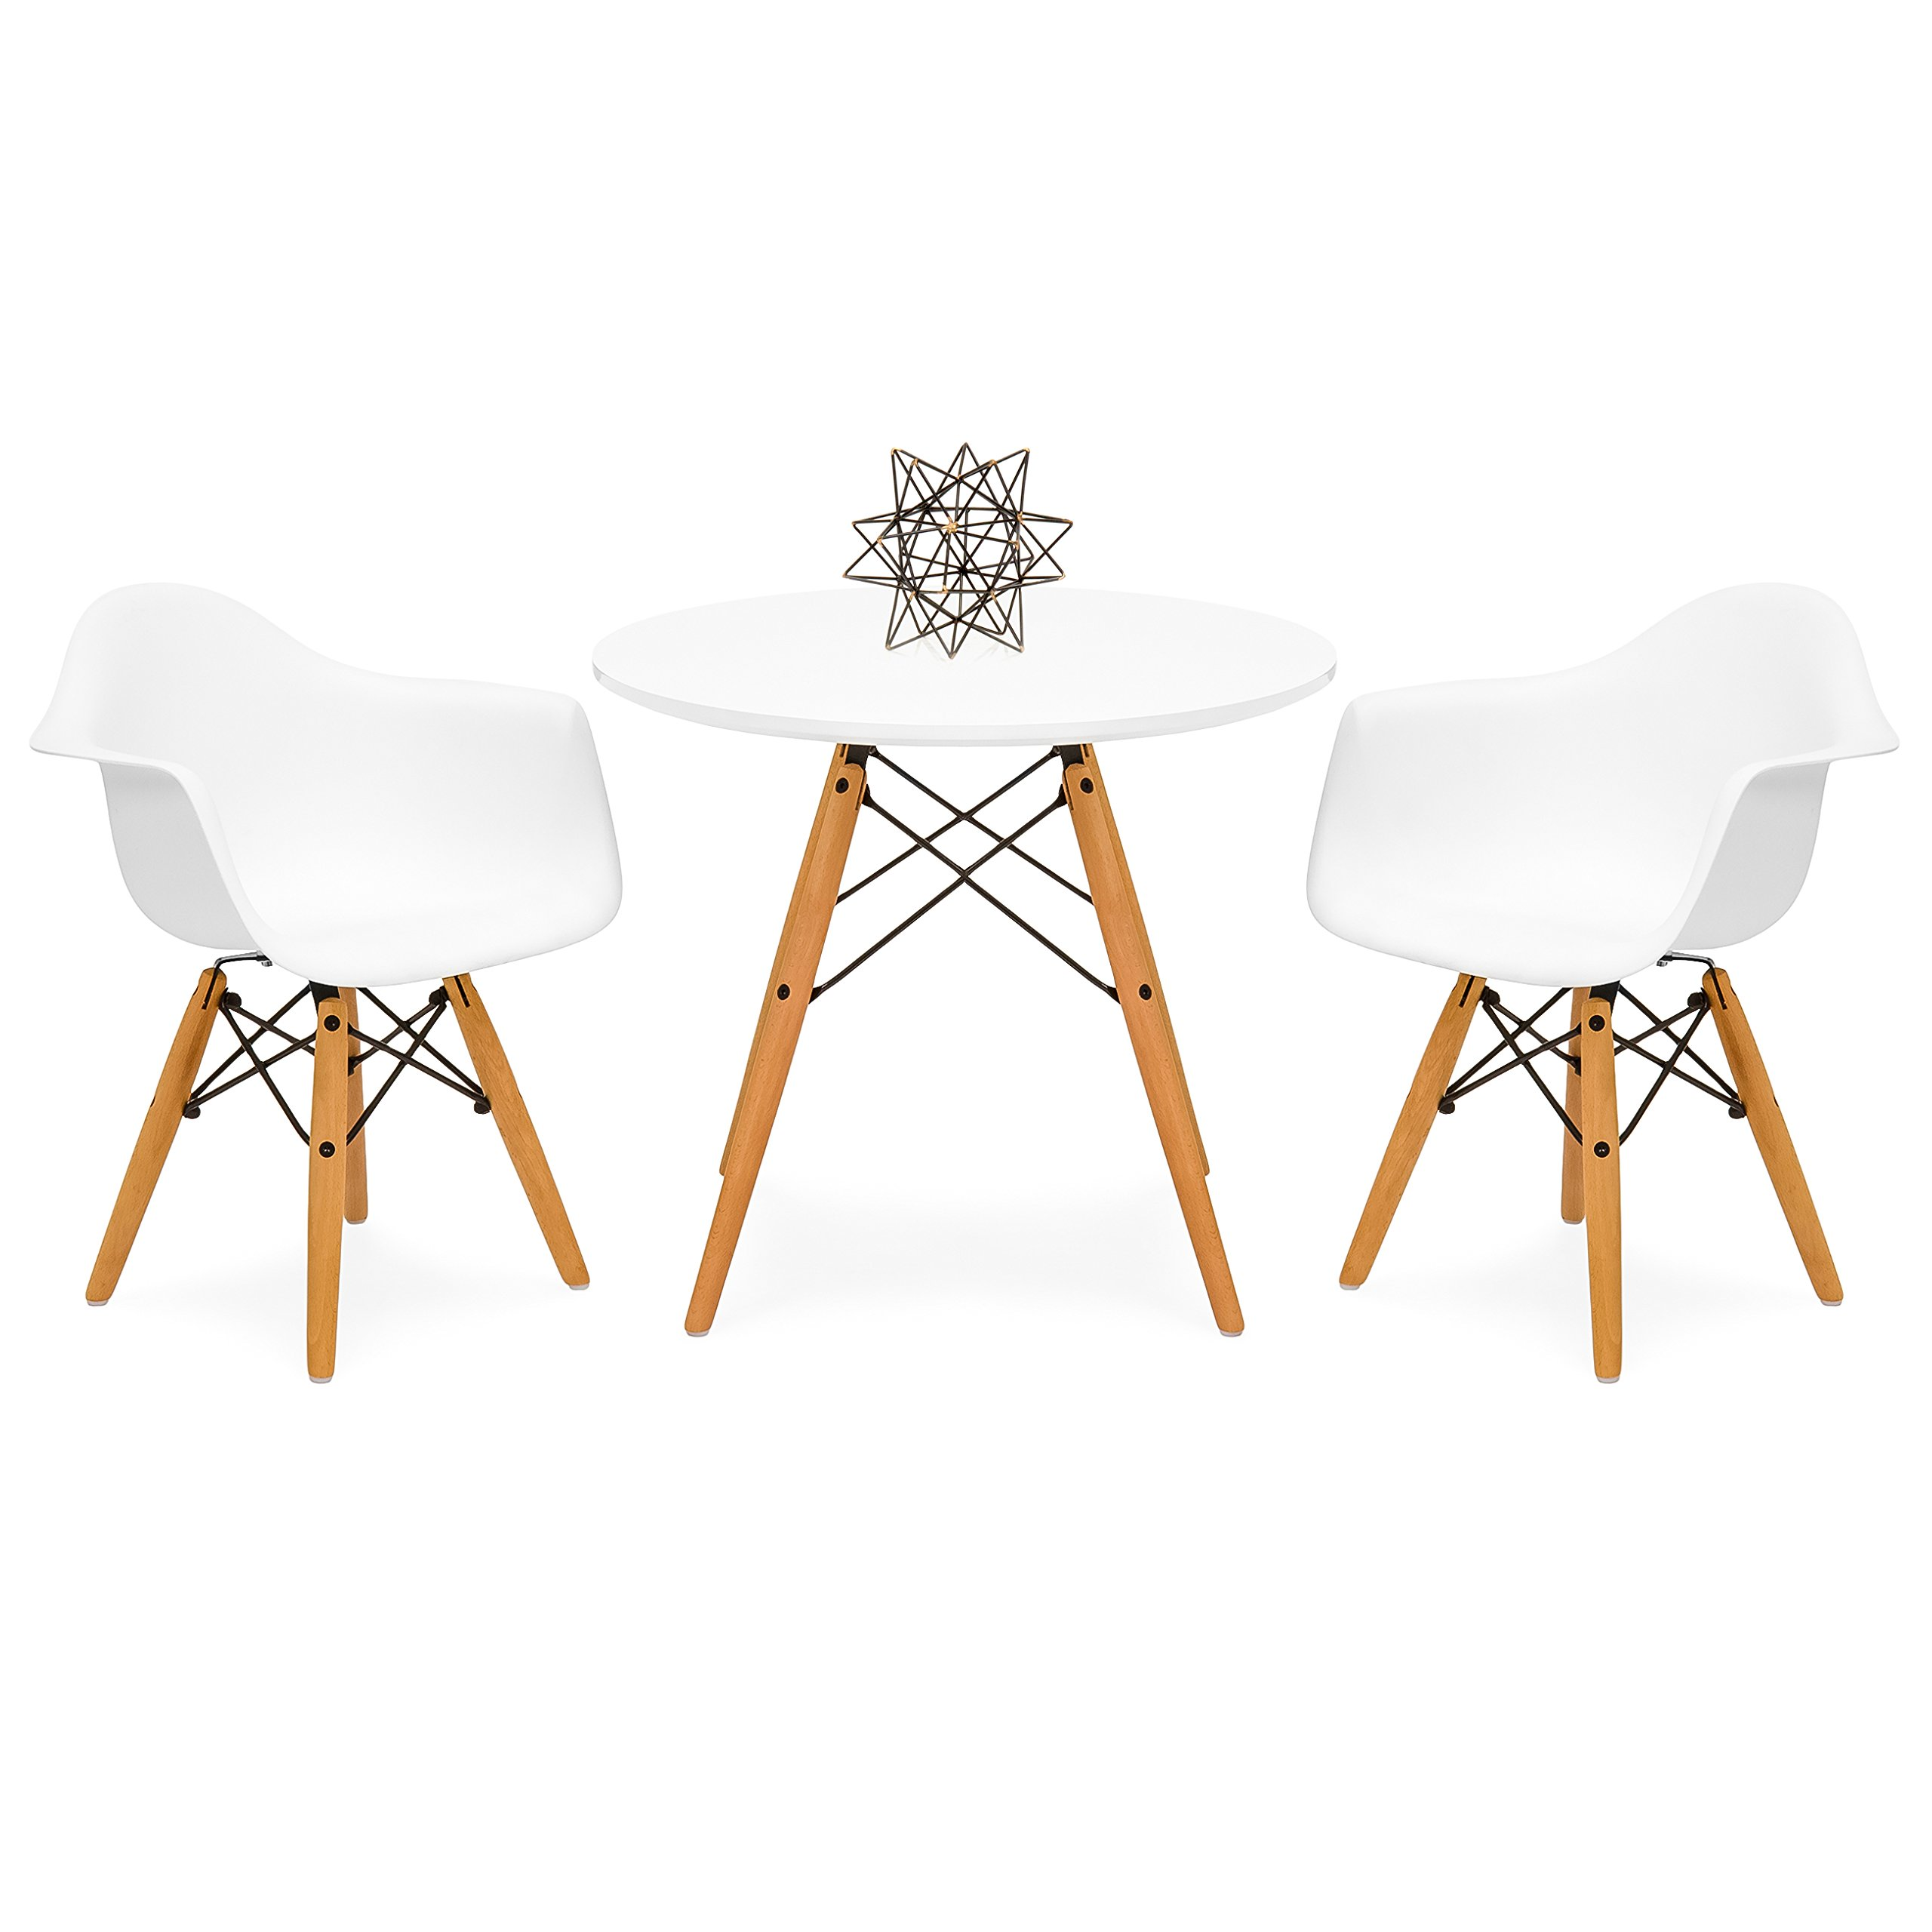 Best Choice Products Kids Modern Mini Eames Style Multifunctional Round Table Set for Bedroom, Playroom w/ 2 Chairs